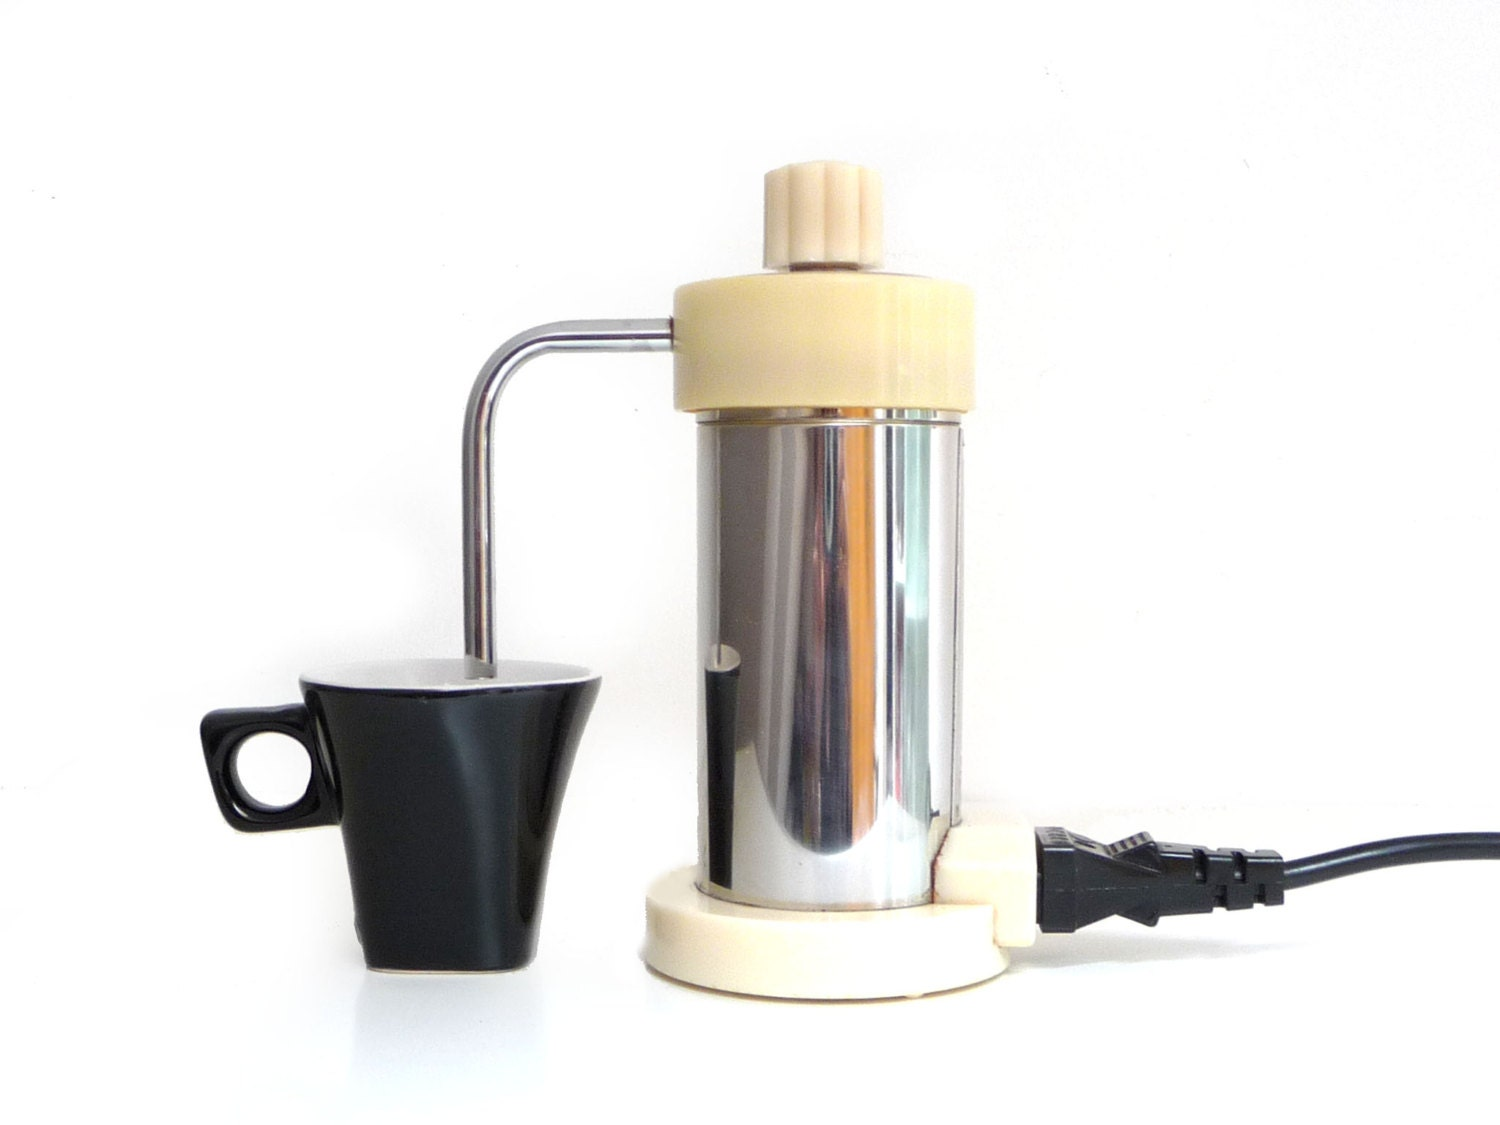 Vintage Electric Espresso Coffee Maker Percolator Italian